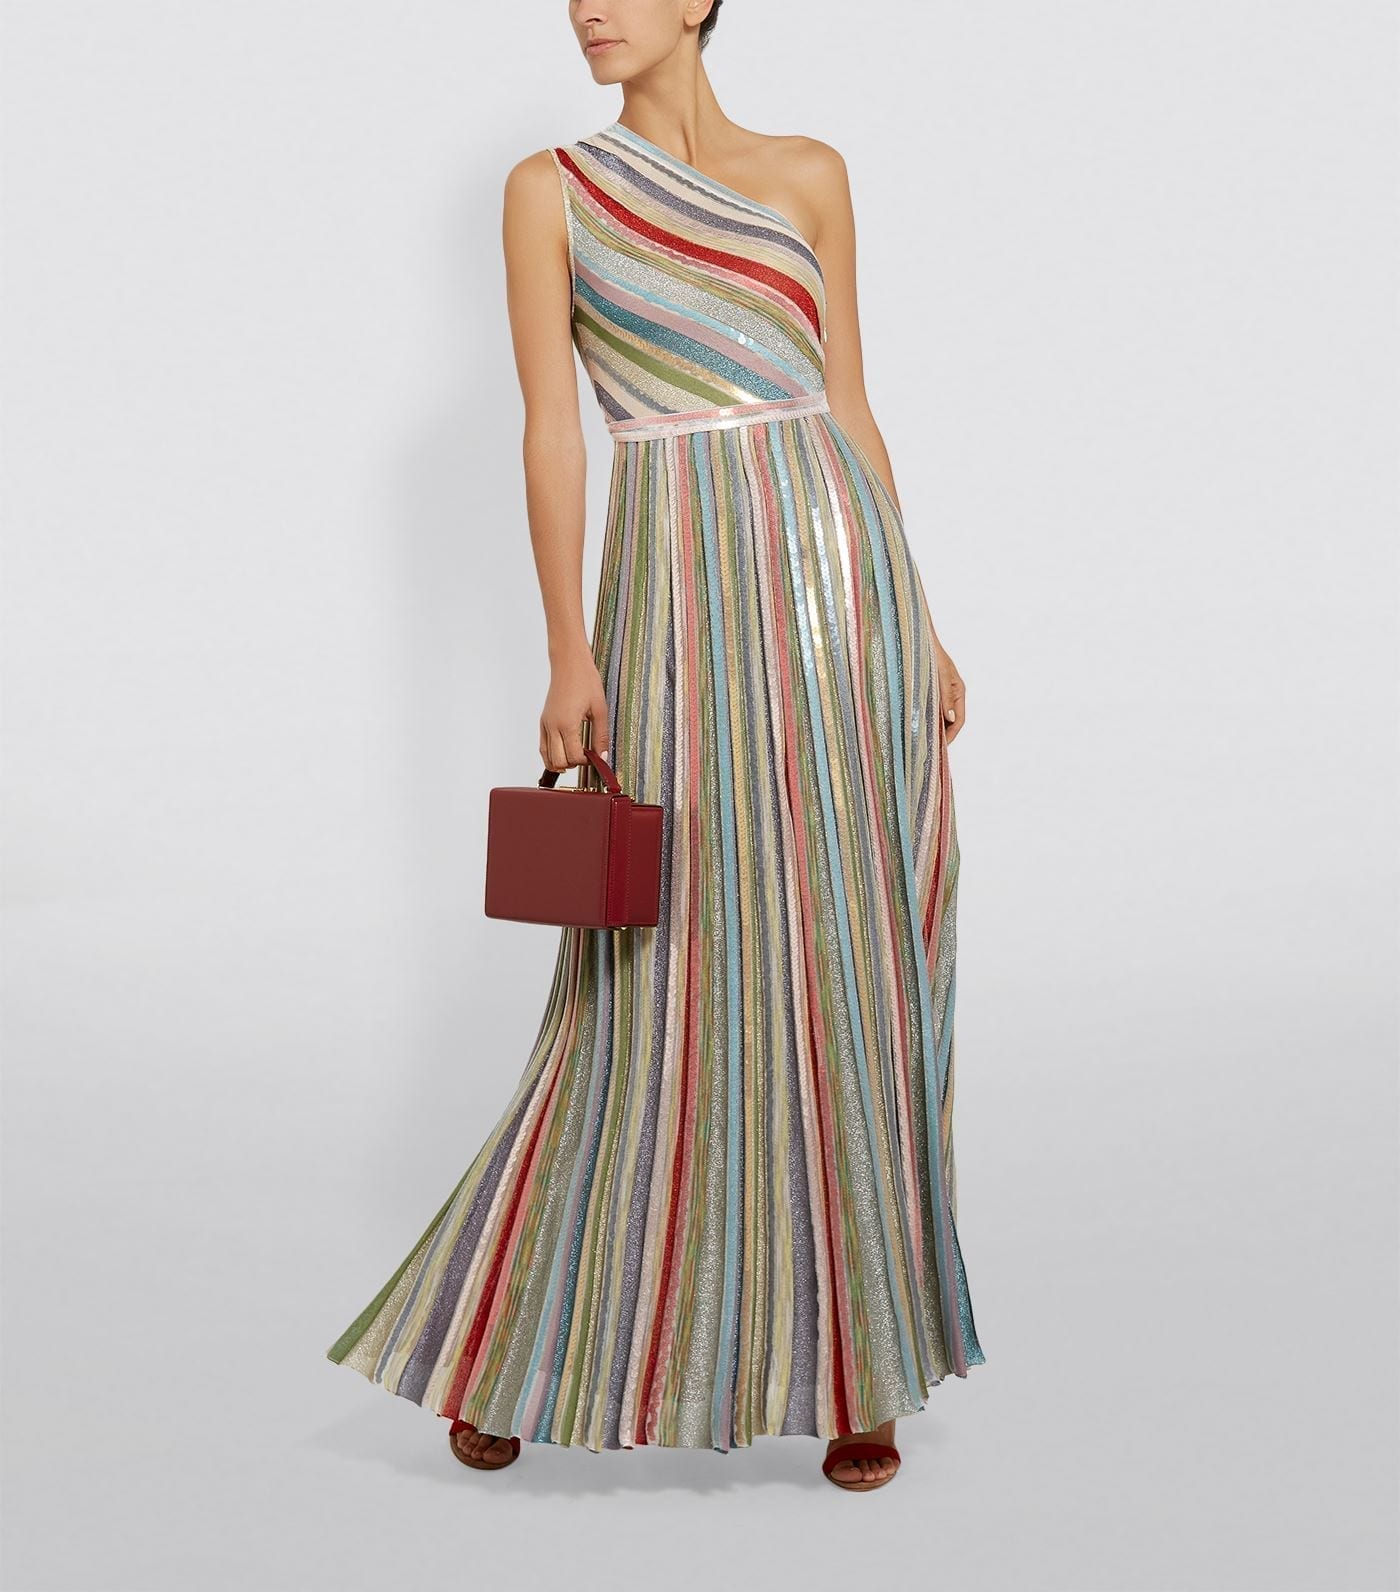 MISSONI One-Shoulder Stripe Maxi Dress